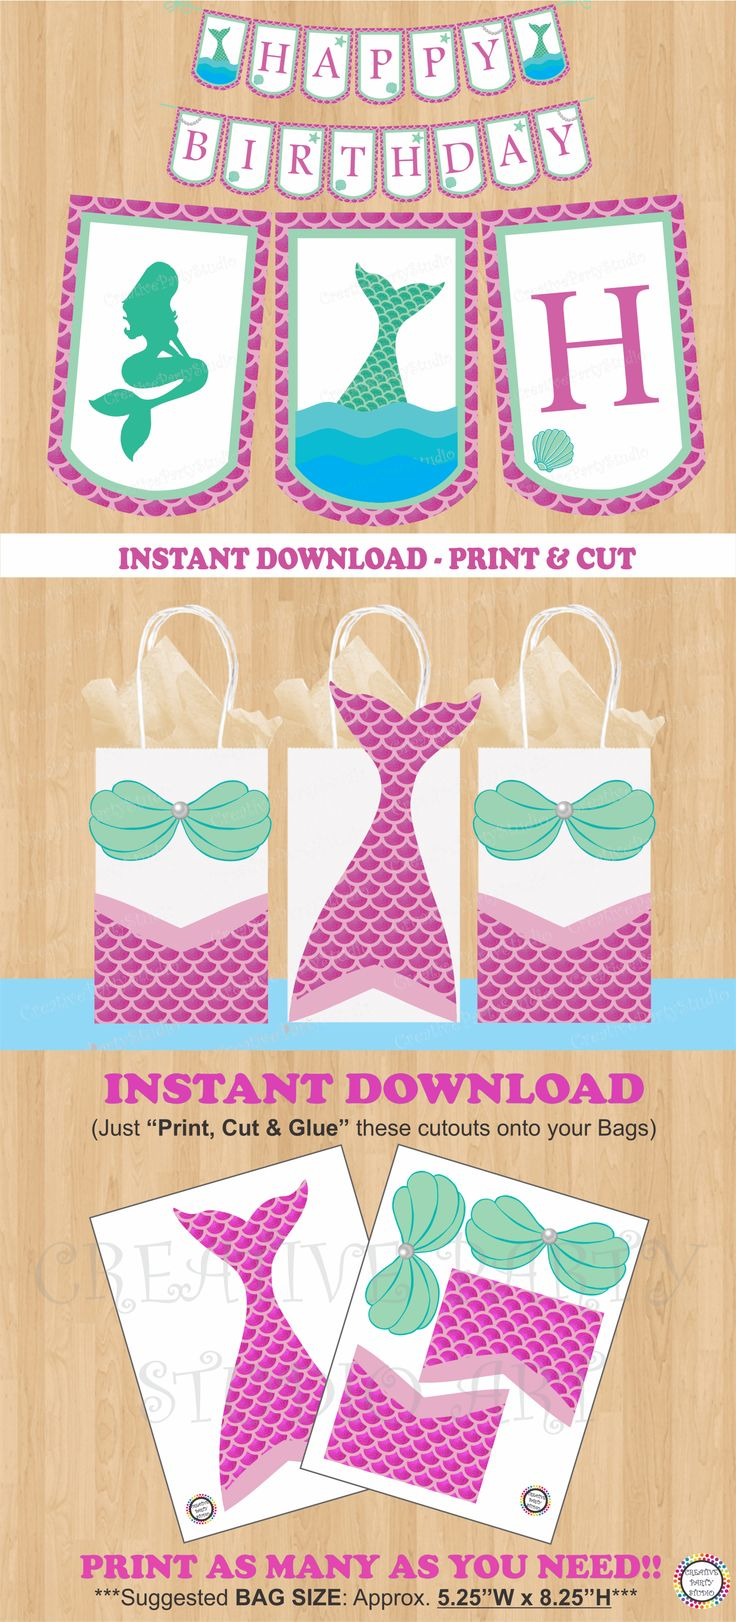 Pink Mermaid Party Favor Bags/ Mermaid Birthday Party ideas/ Mermaid Party decorations/ banner/ teal and pink/ favors/ Girl Summer Pool Party ideas/ Under the Sea party/ Pirate Party/ Mermaid treat/ goodie/ goody/ gift/ loot/ candy/ bags/ little mermaid birthday cake/ cupcake toppers/ Mermaid invite/ mermaid invitations/ free/ Mermaids party ideas/ DIY favor bags/ labels/ fiesta sirena/ sirenita/ mermaid pink tail swim suit/ swimmable/ festa da sereia